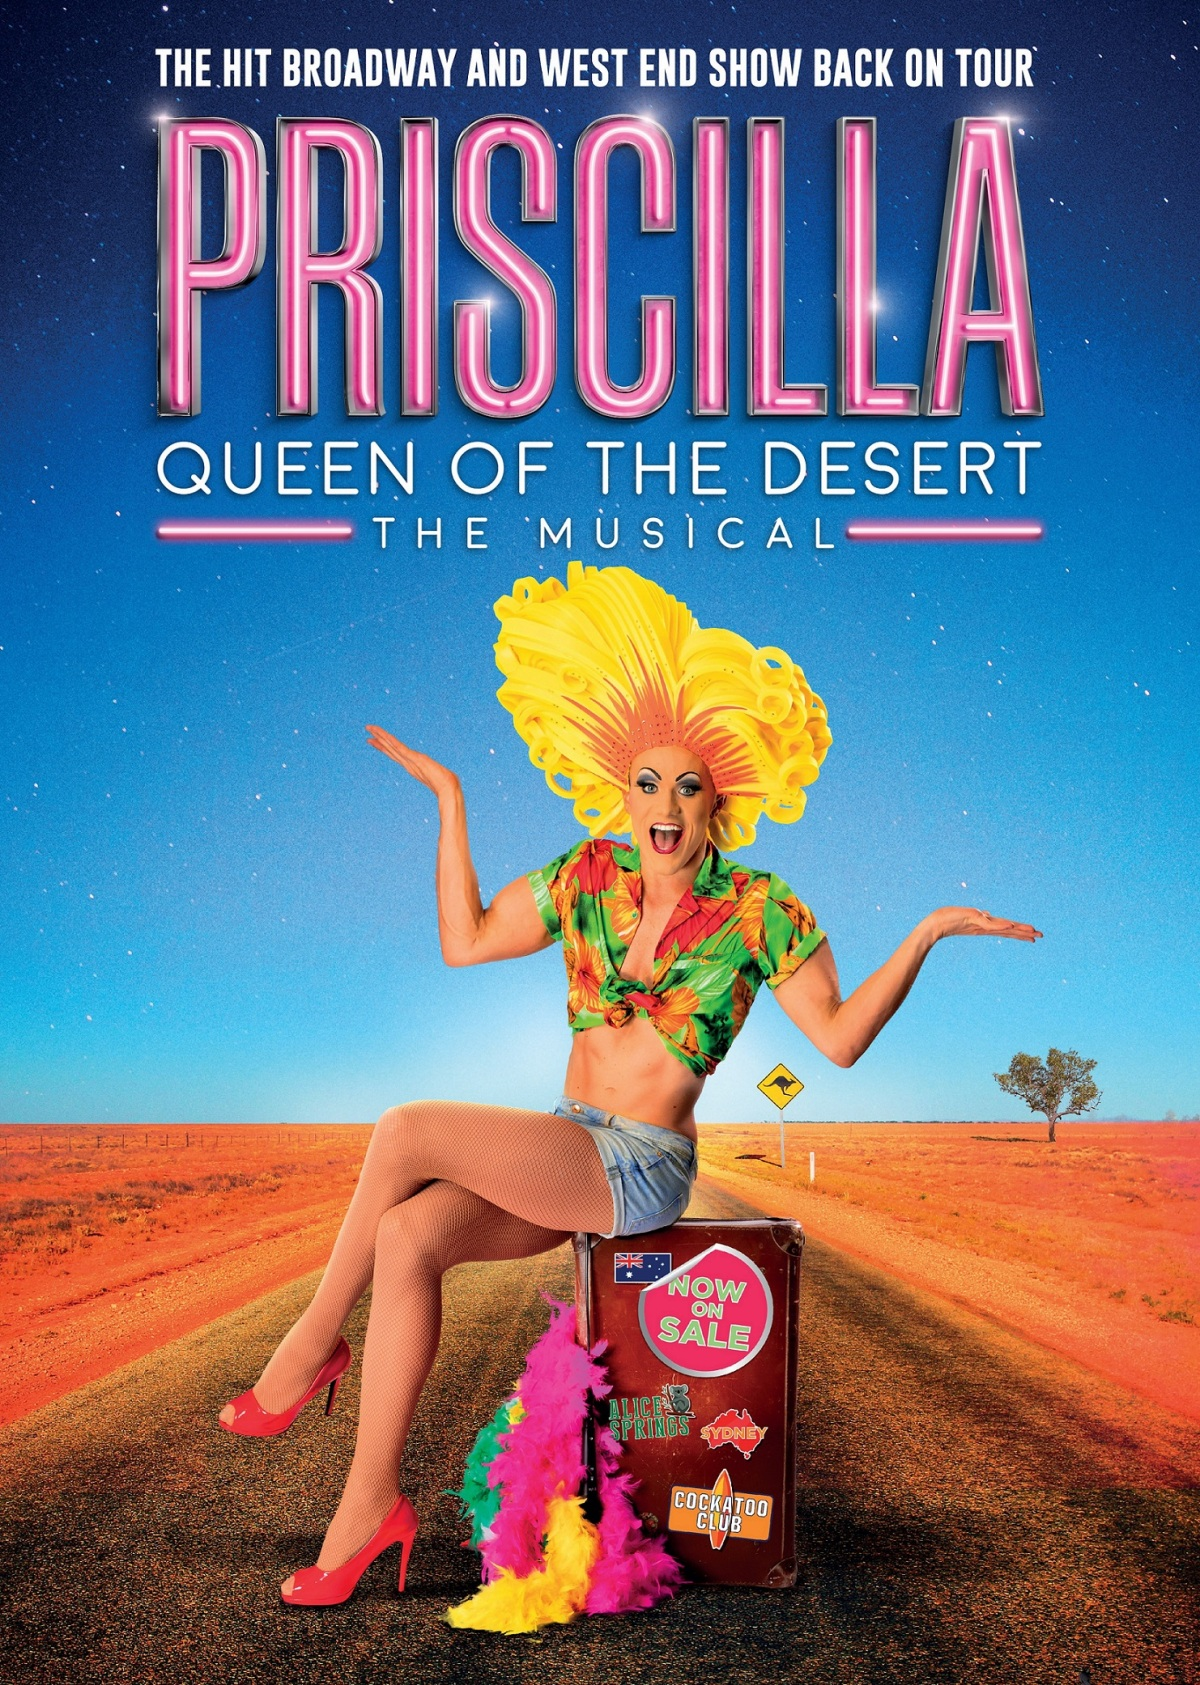 Priscilla-Queen-of-the-Desert.jpg